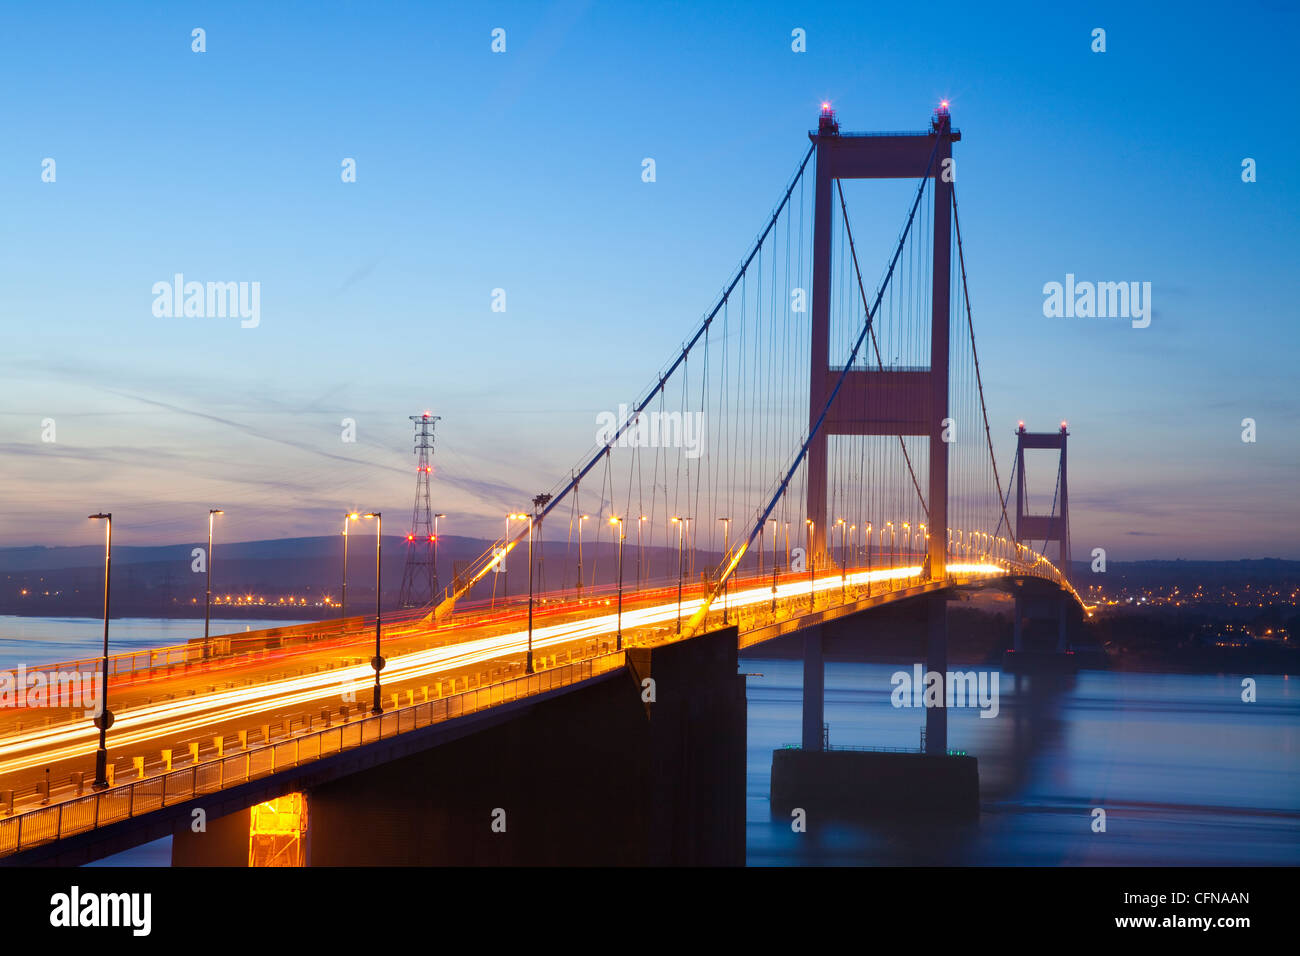 Severn Estuary and First Severn Bridge, near Chepstow, South Wales, Wales, United Kingdom, Europe - Stock Image